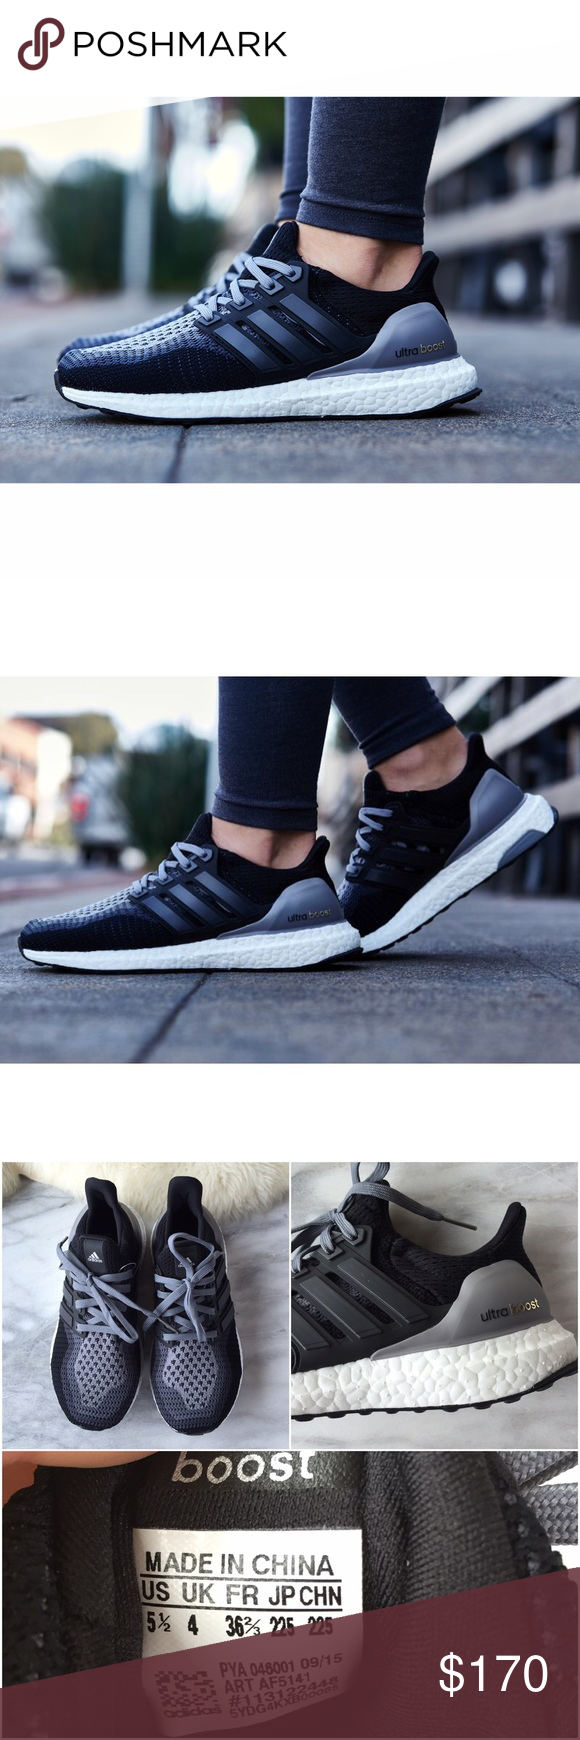 cheap for discount 01eab 43c46 Adidas Ultra Boost Knit Running Shoes ?Authentic Adidas ...